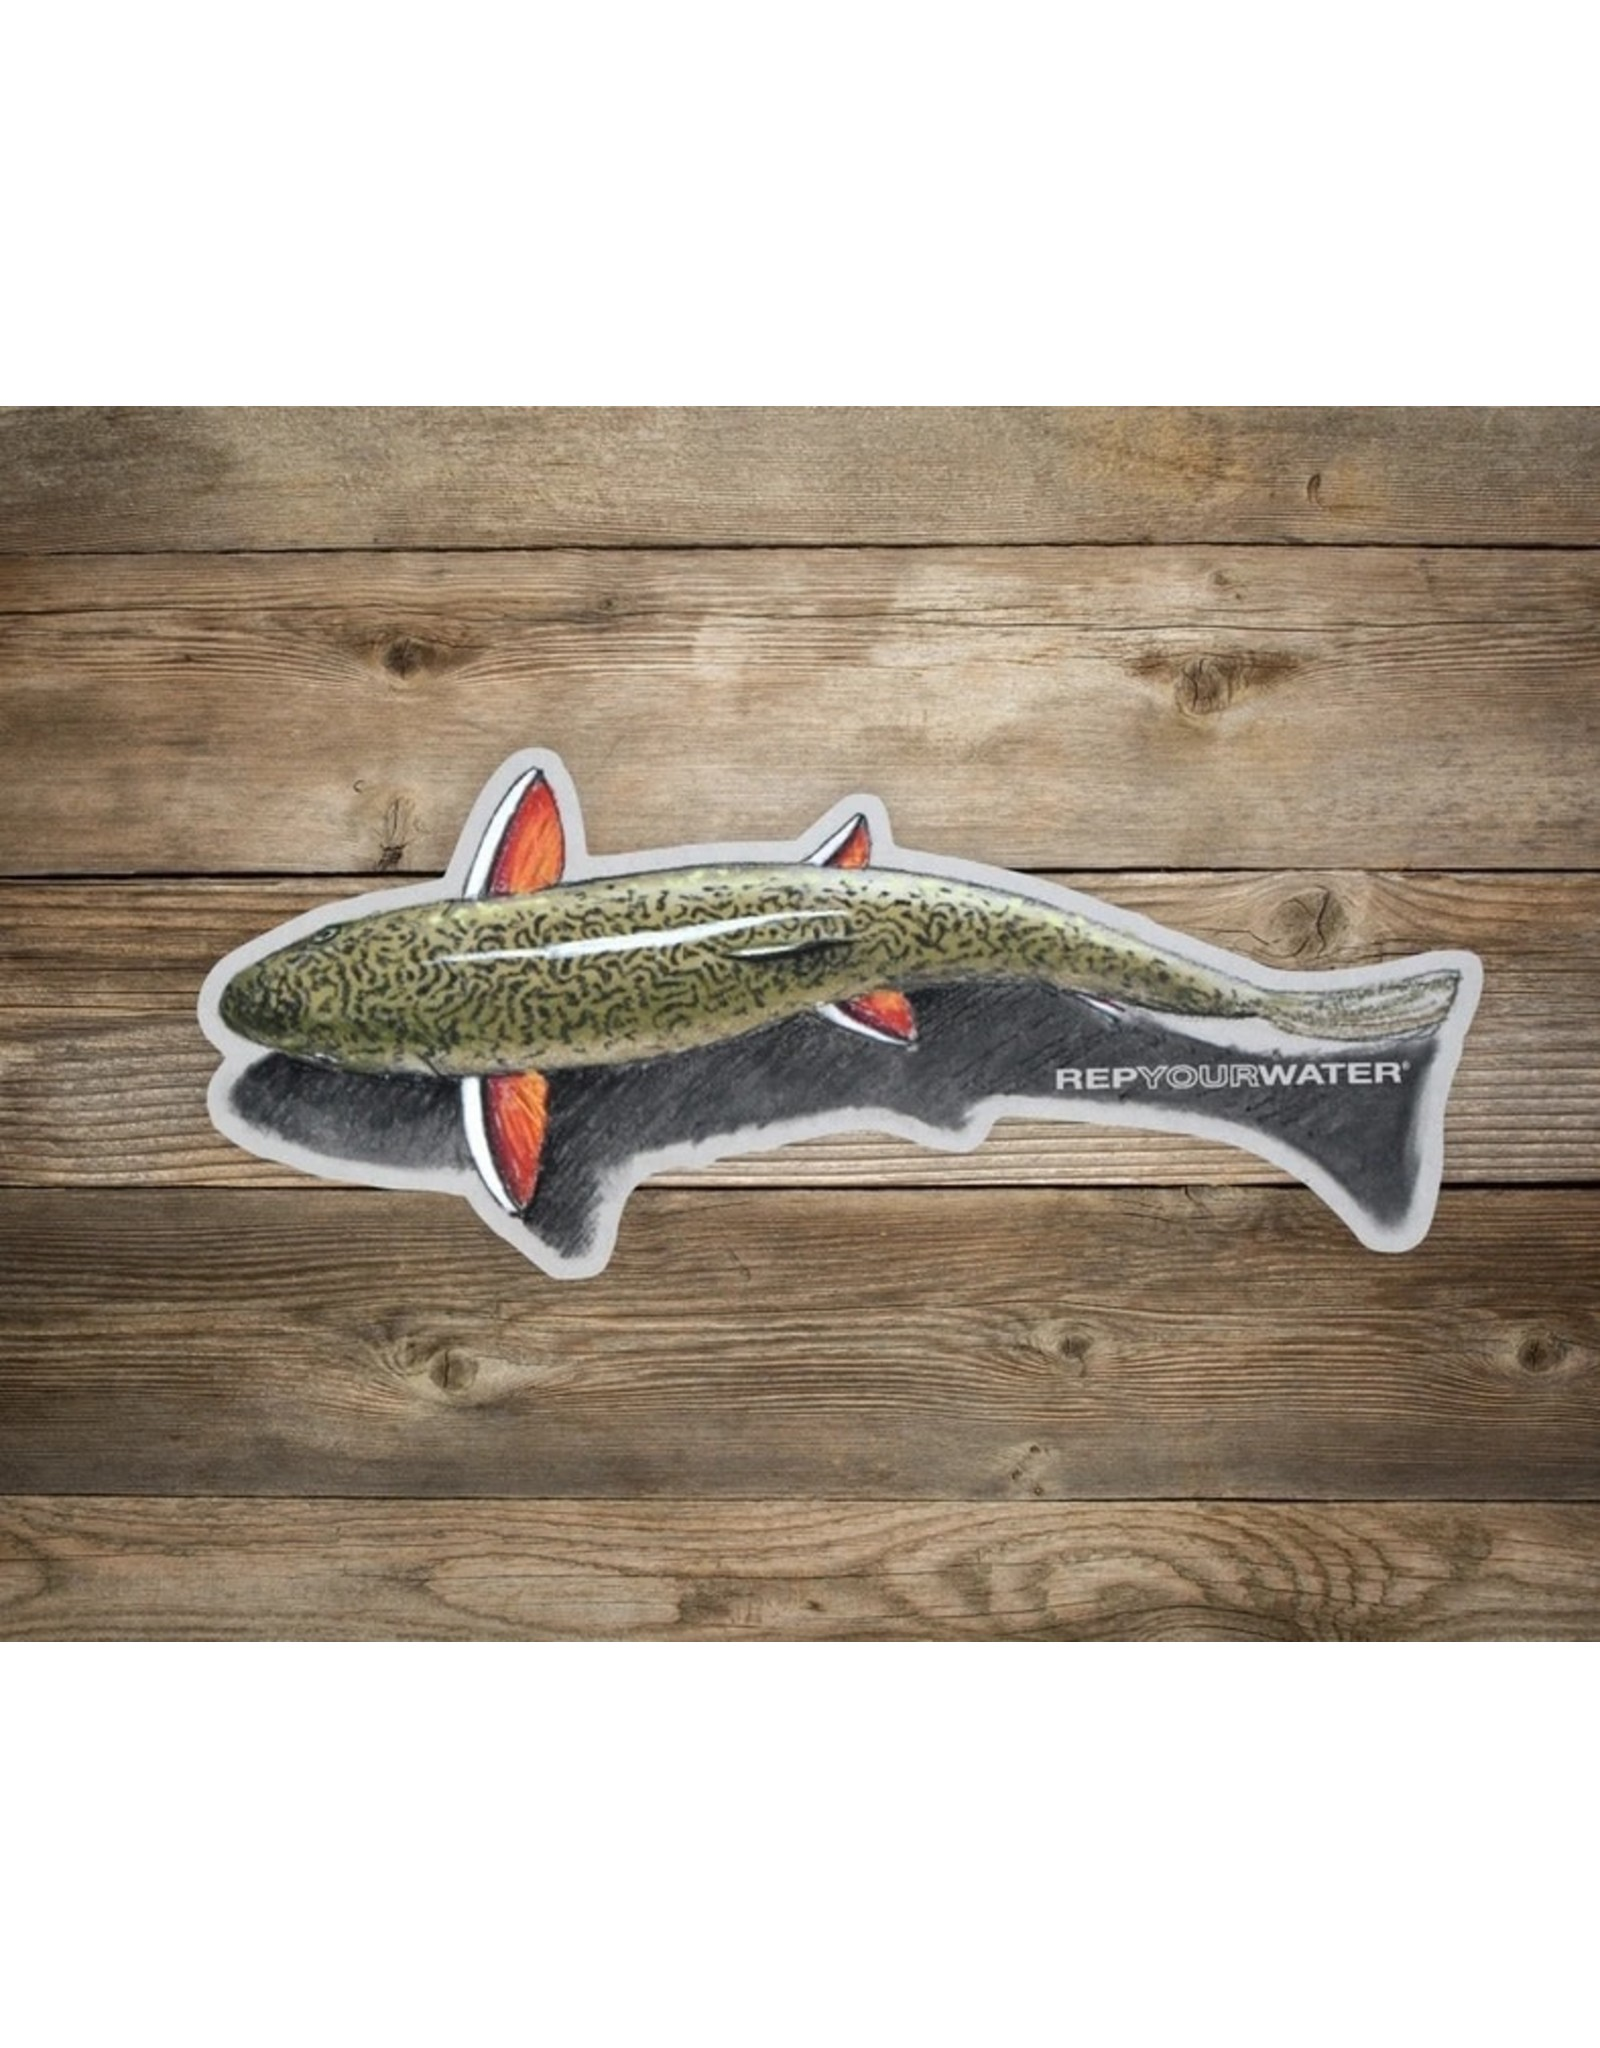 Rep Your Water RepYourWater Artist Reserve Shallow Water Brookie Sticker - Large